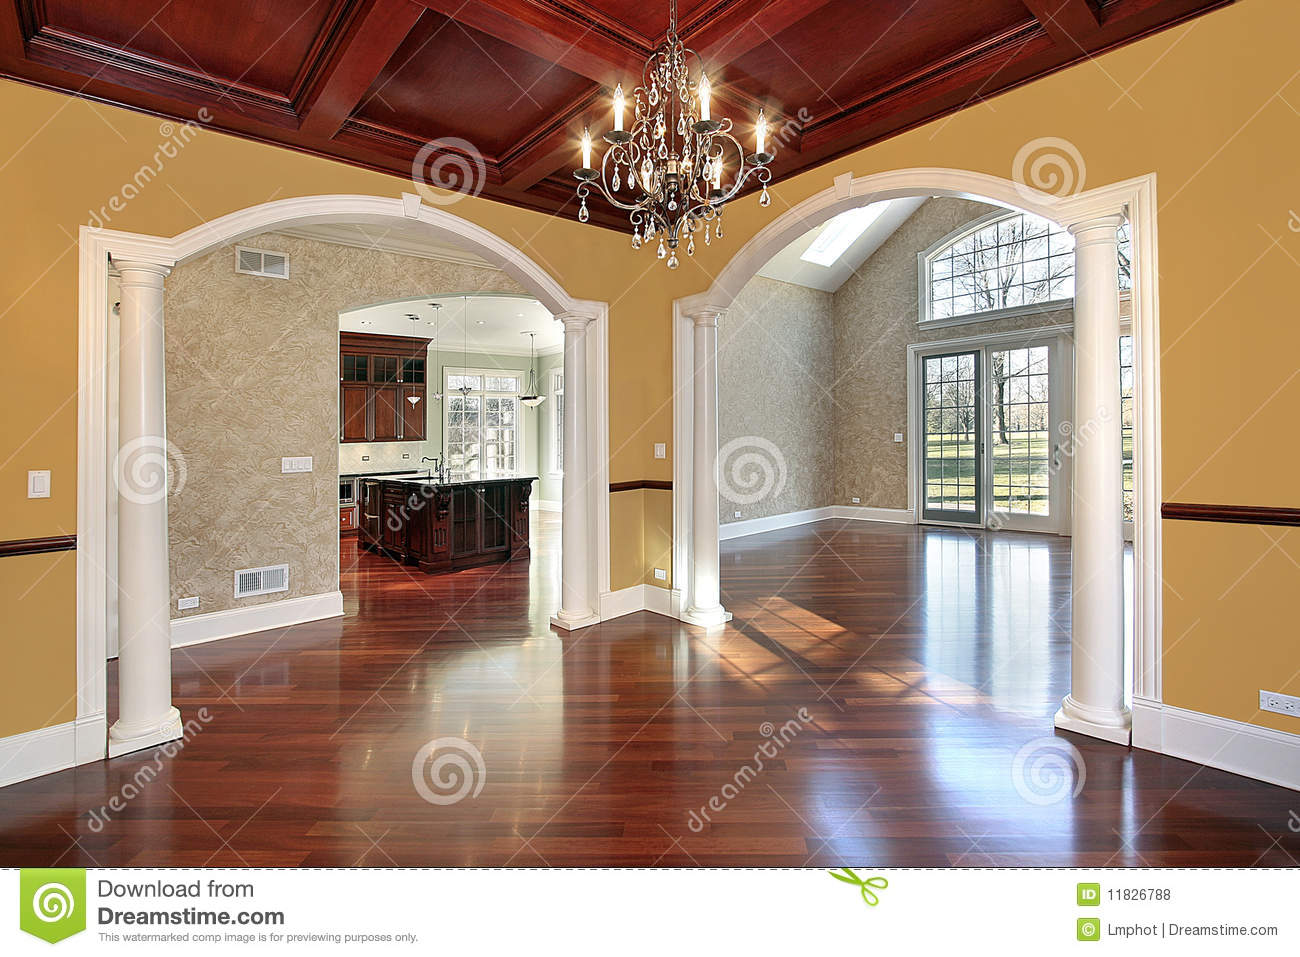 Dining room with white columns stock photo image of for Dining room designs with pillars